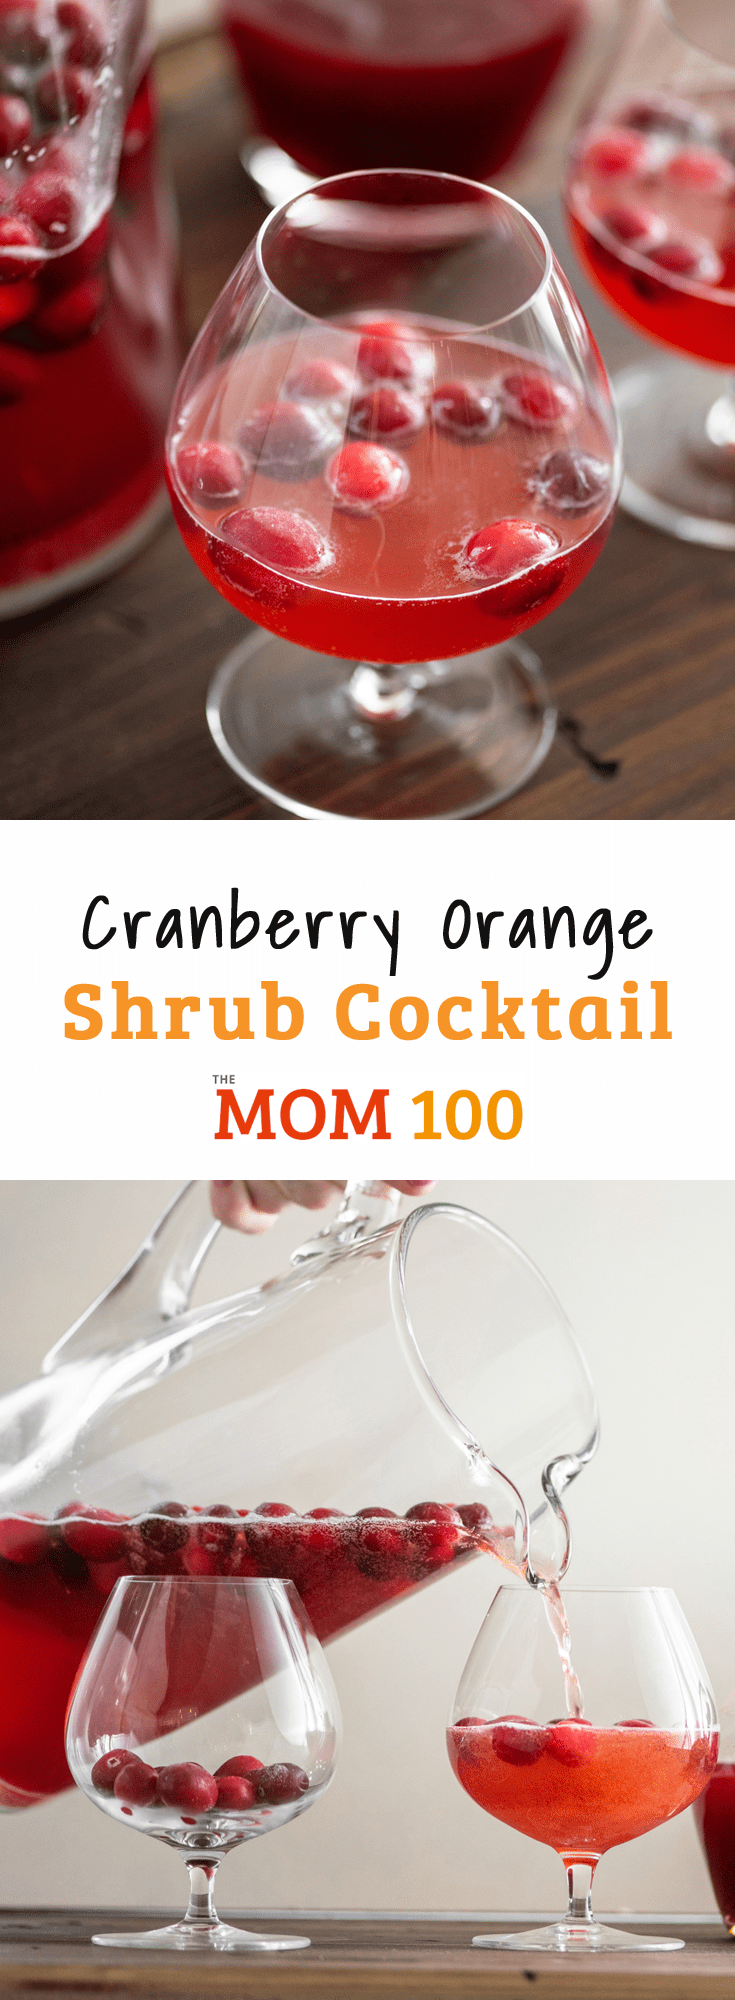 Cranberry Orange Shrub: This slightly sweet, slightly tart fruity drink can be made as a mocktail or a cocktail, and is perfect for holiday gatherings.